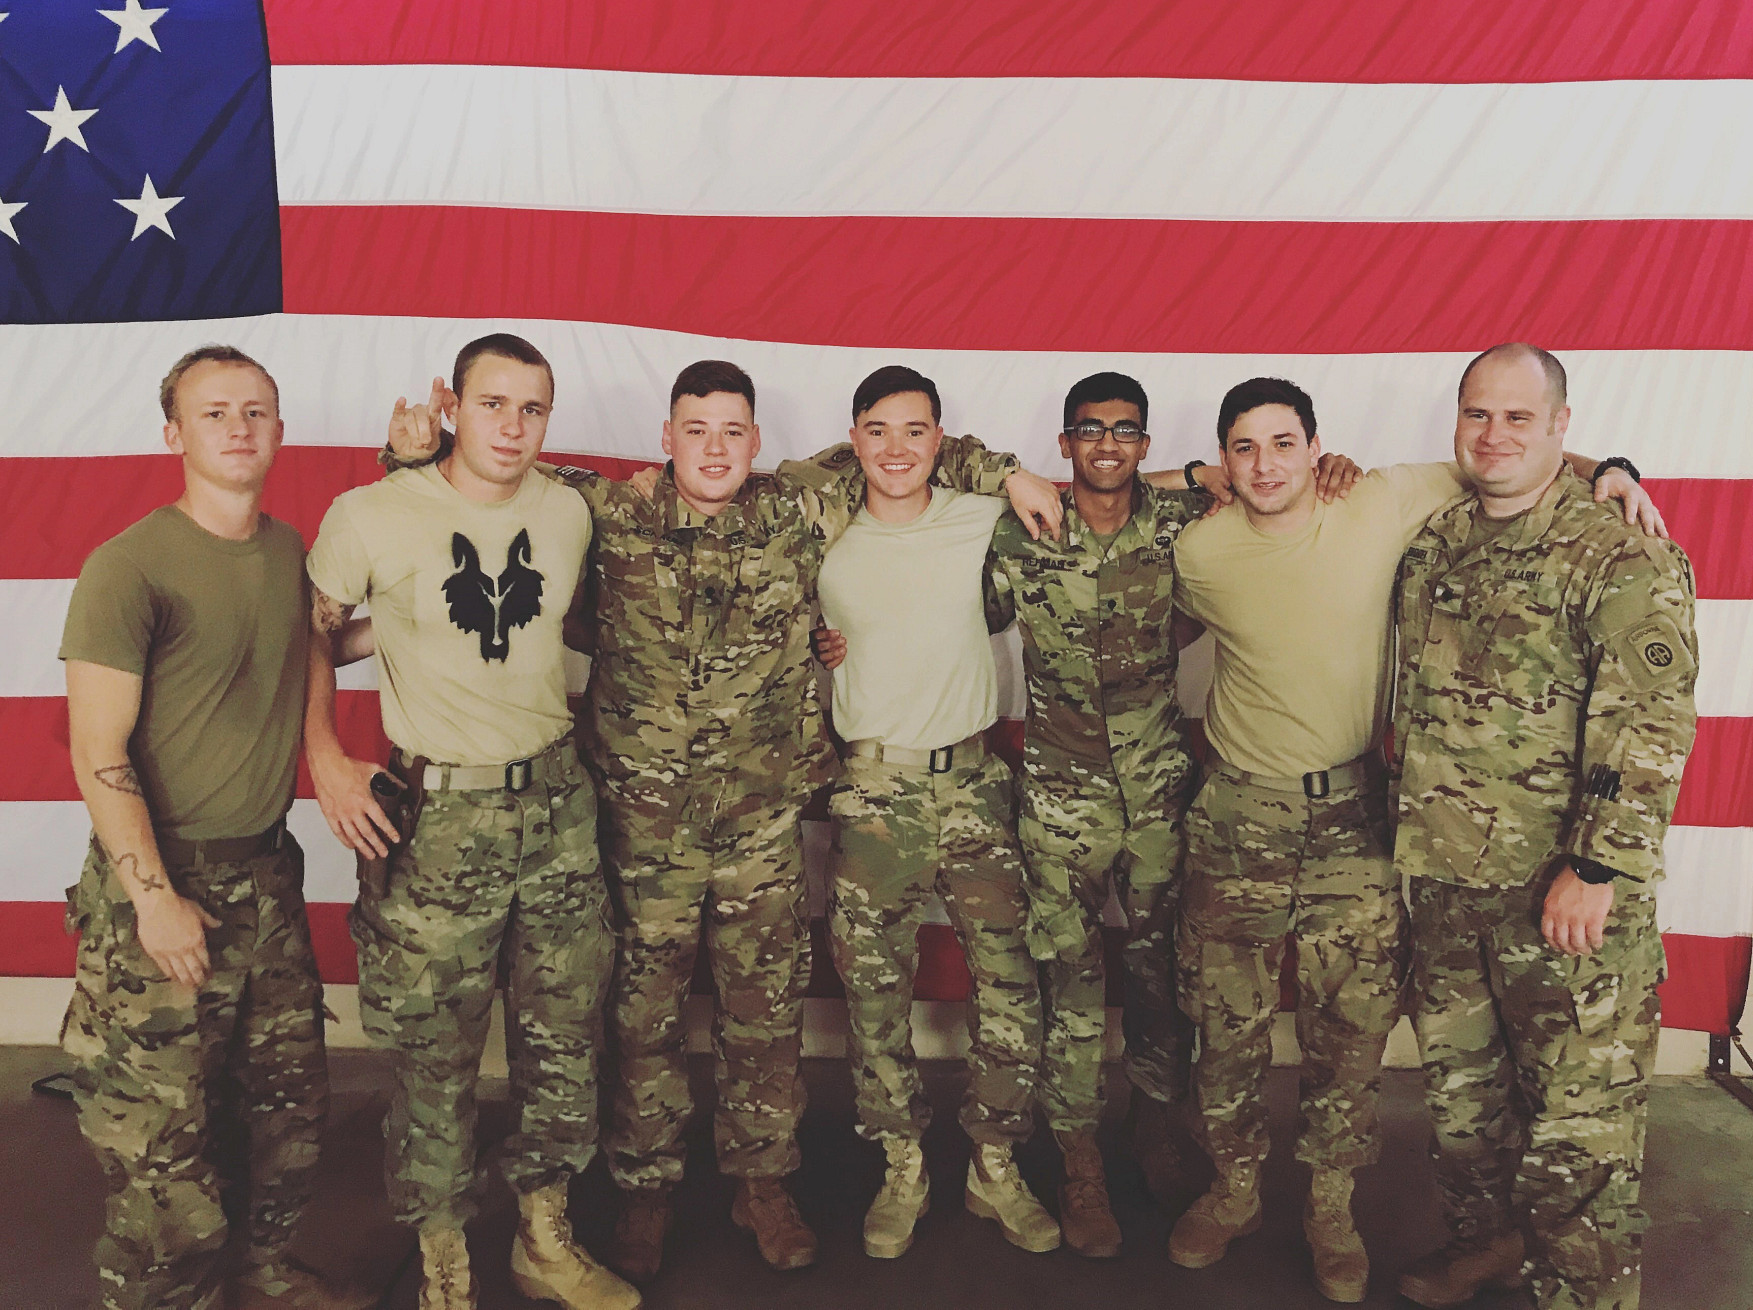 Seven U.S. Army soldiers stand in front of a large American flag